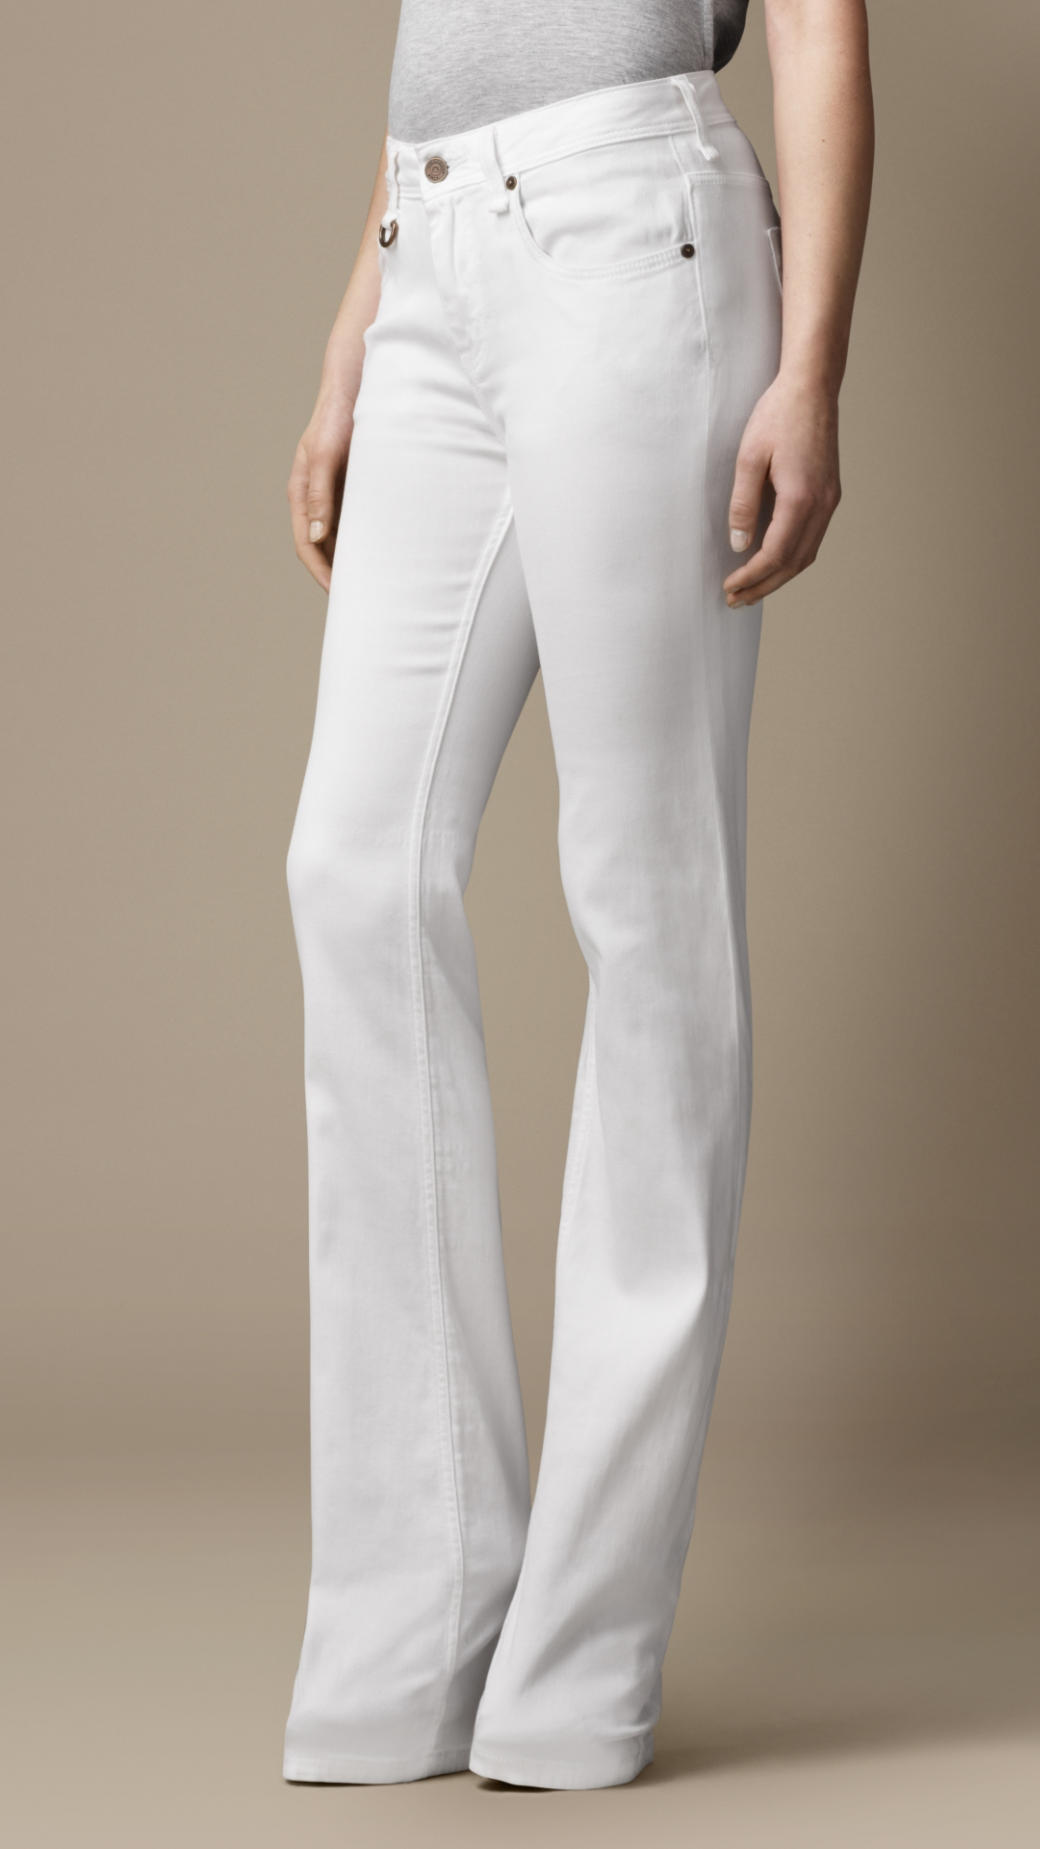 Burberry Chelsea Optical White Bootcut Jeans in White | Lyst